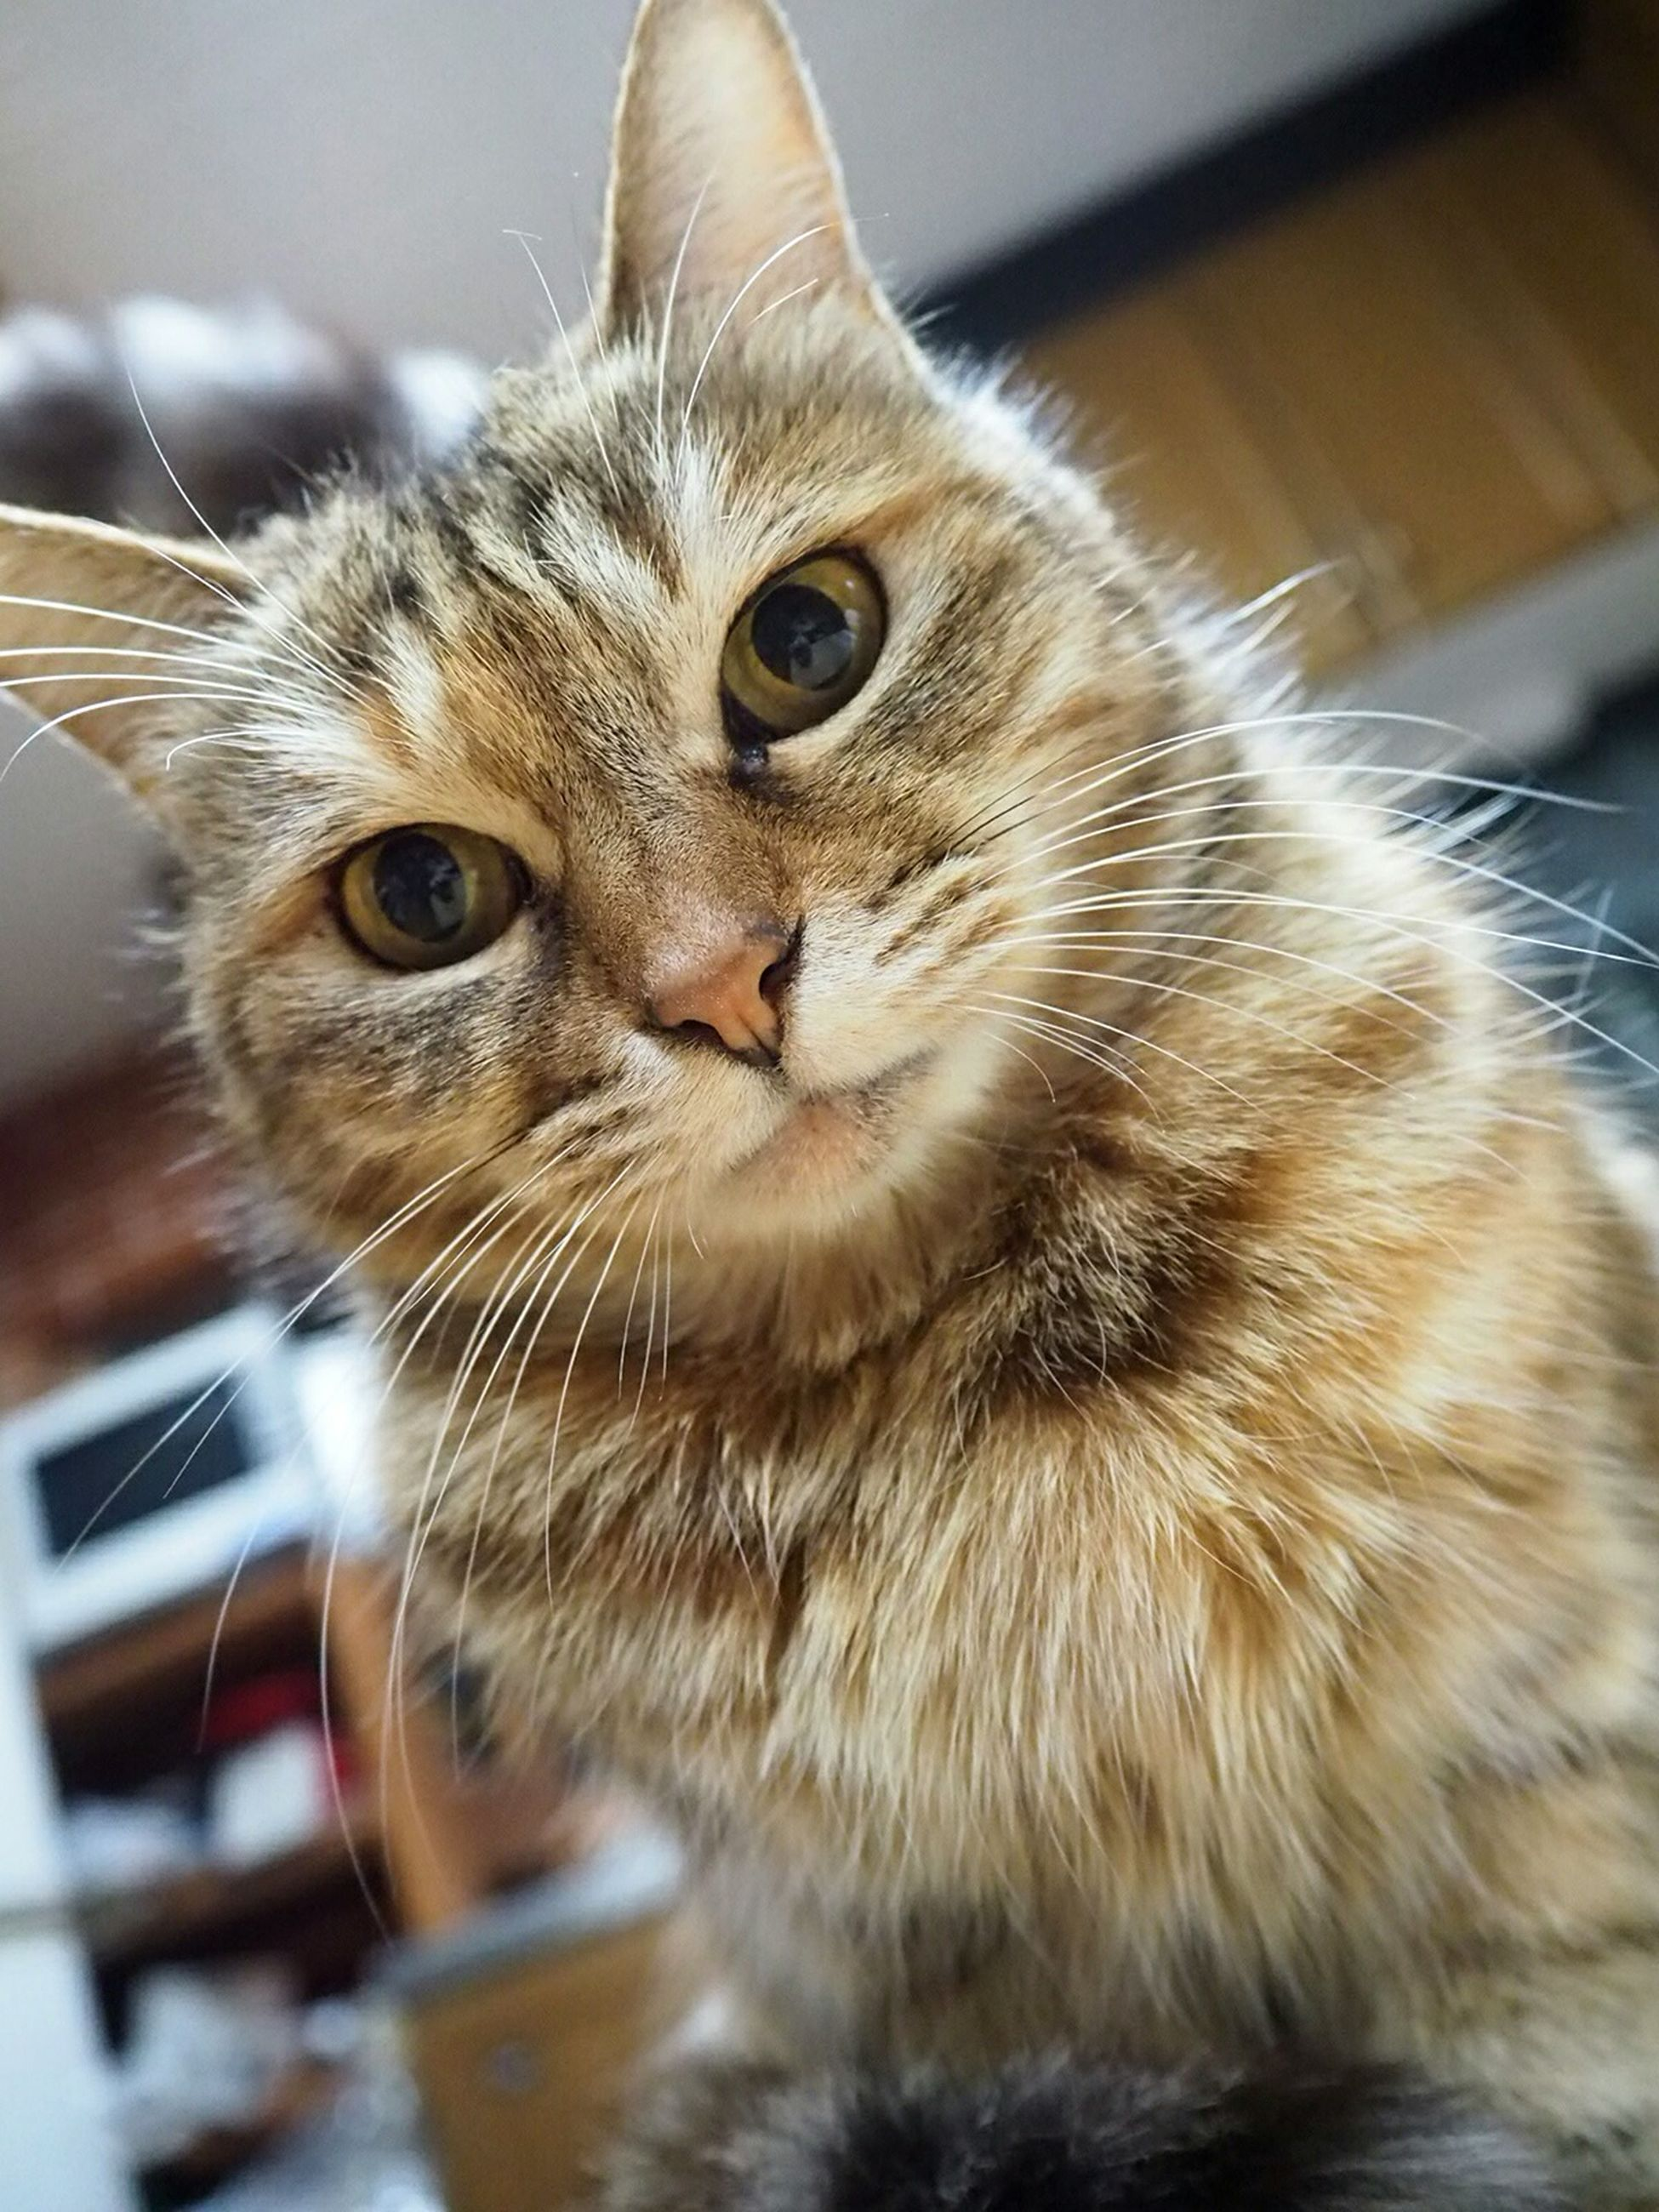 domestic cat, animal themes, cat, one animal, pets, domestic animals, whisker, indoors, feline, portrait, looking at camera, close-up, mammal, focus on foreground, alertness, animal head, animal eye, selective focus, front view